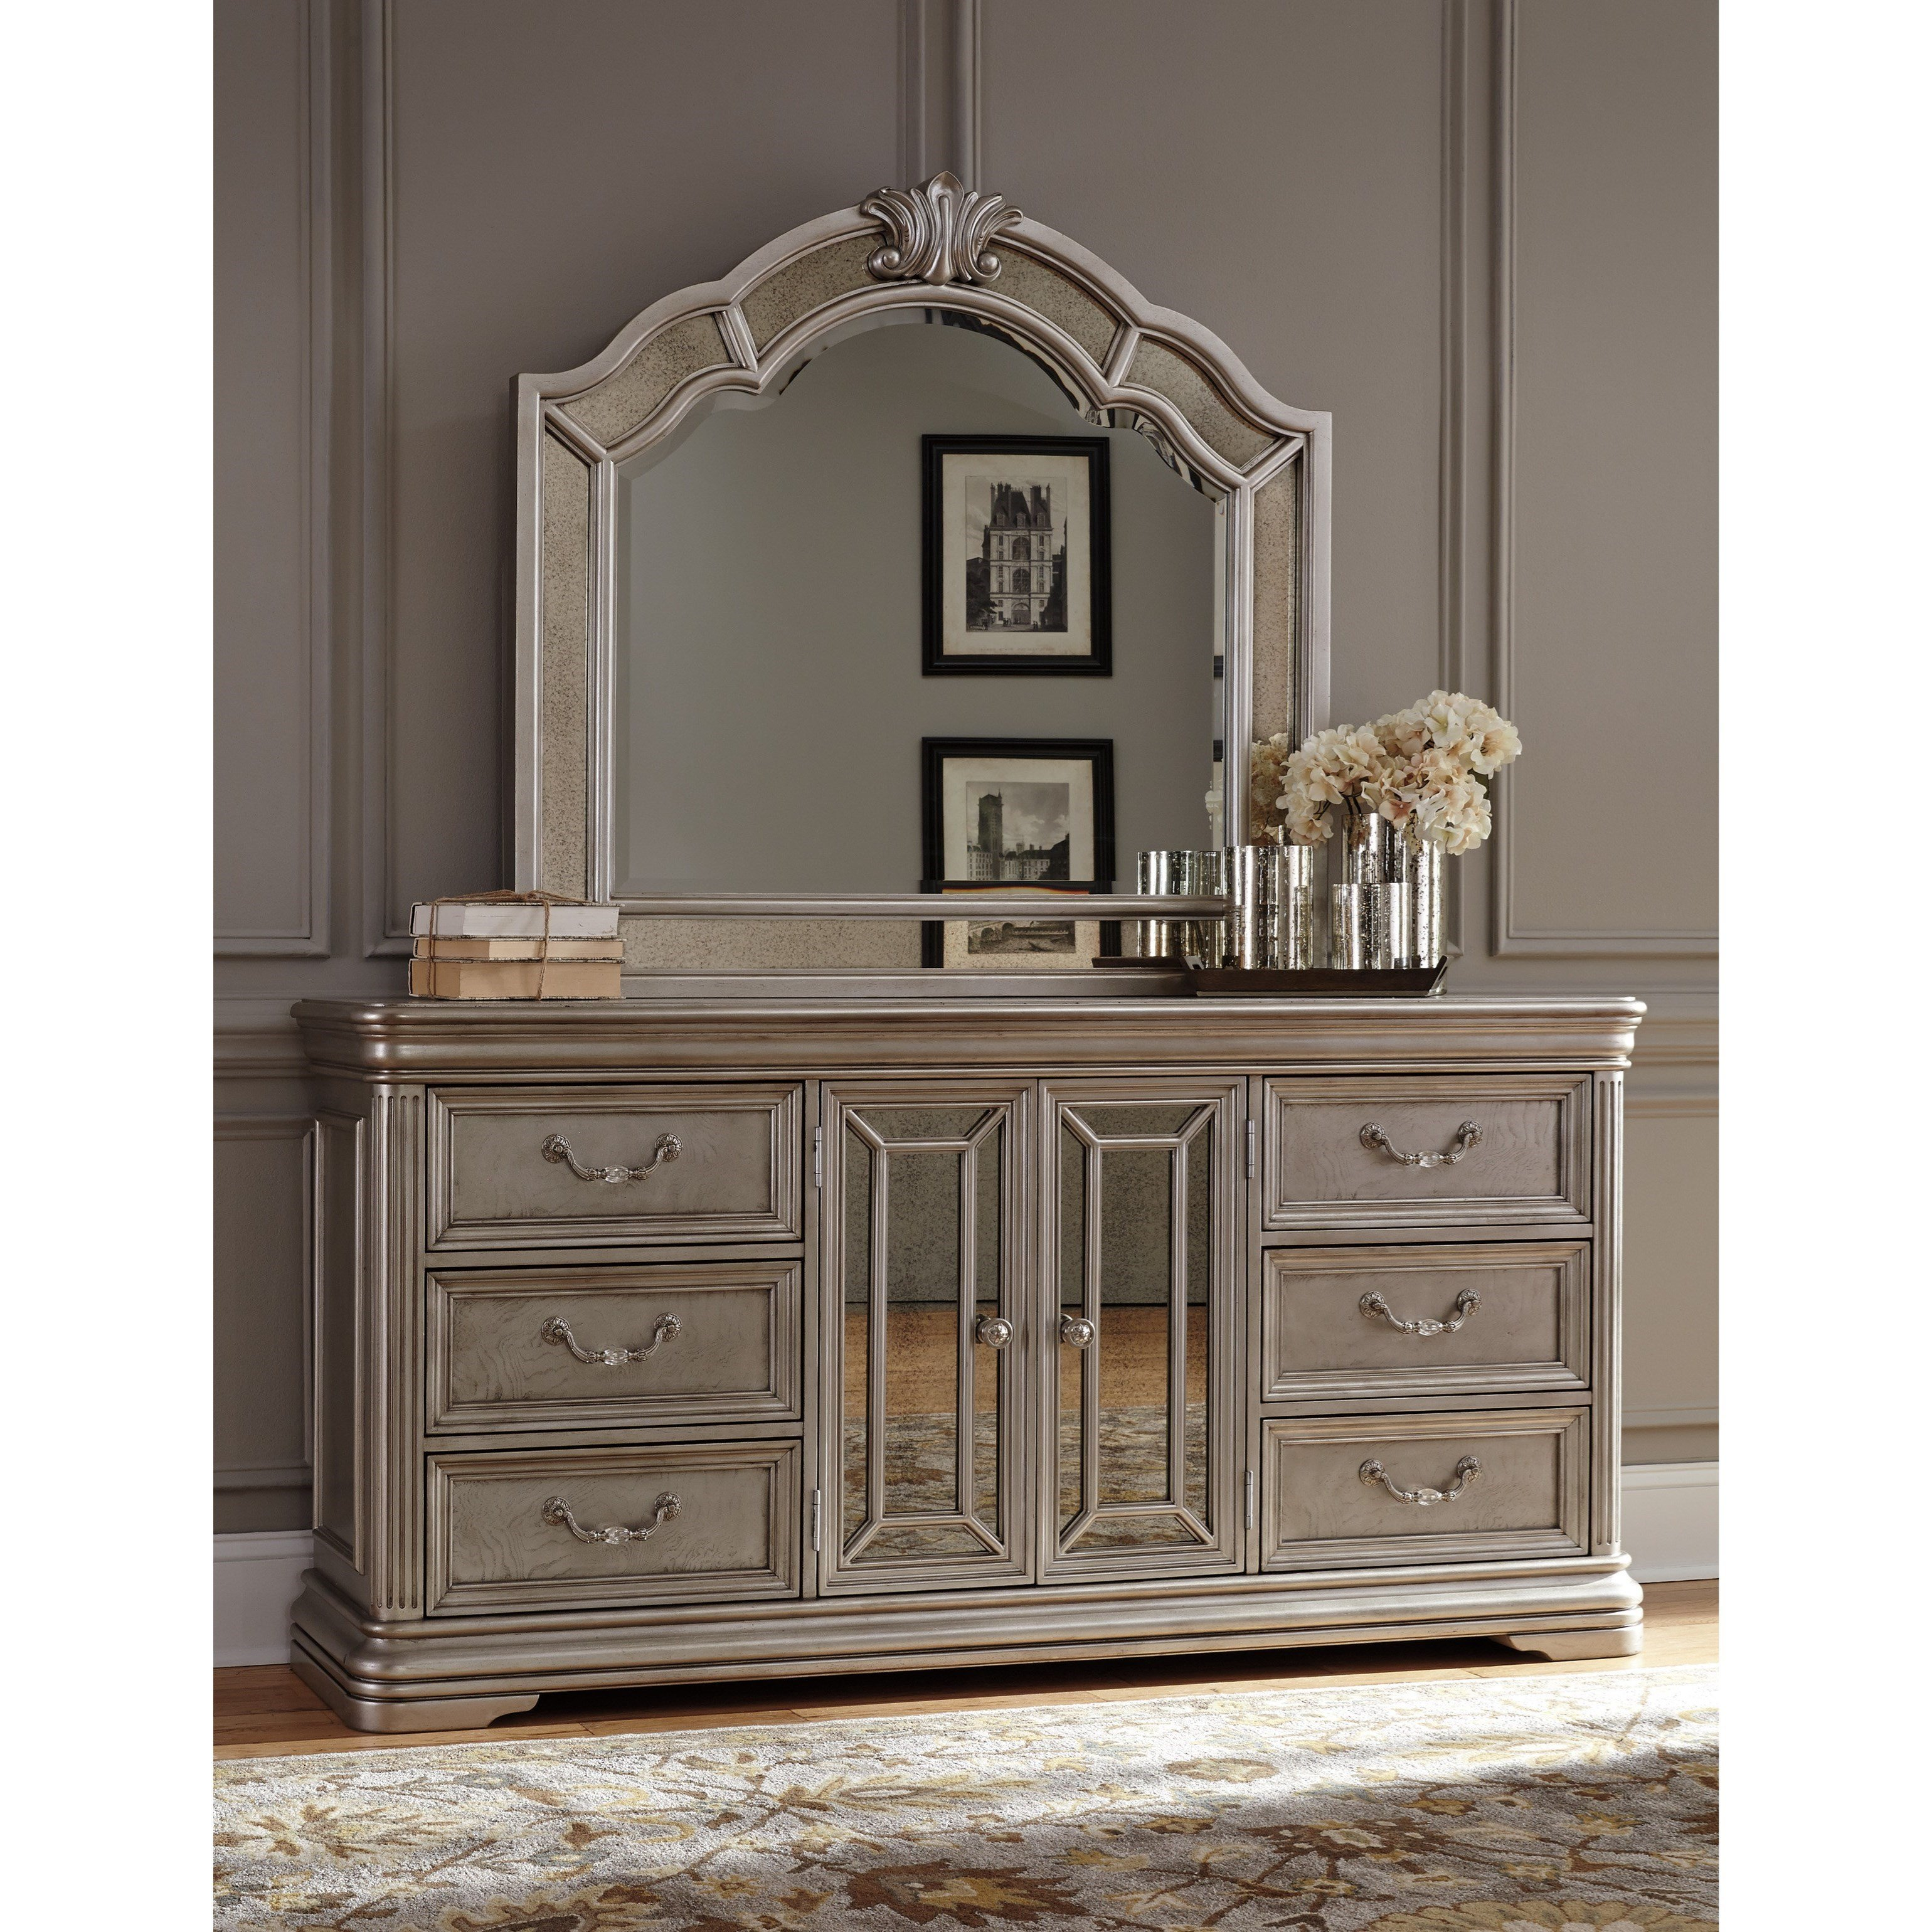 Best Signature Design By Ashley Birlanny Dresser With Mirror Panels Bedroom Mirror Miskelly With Pictures